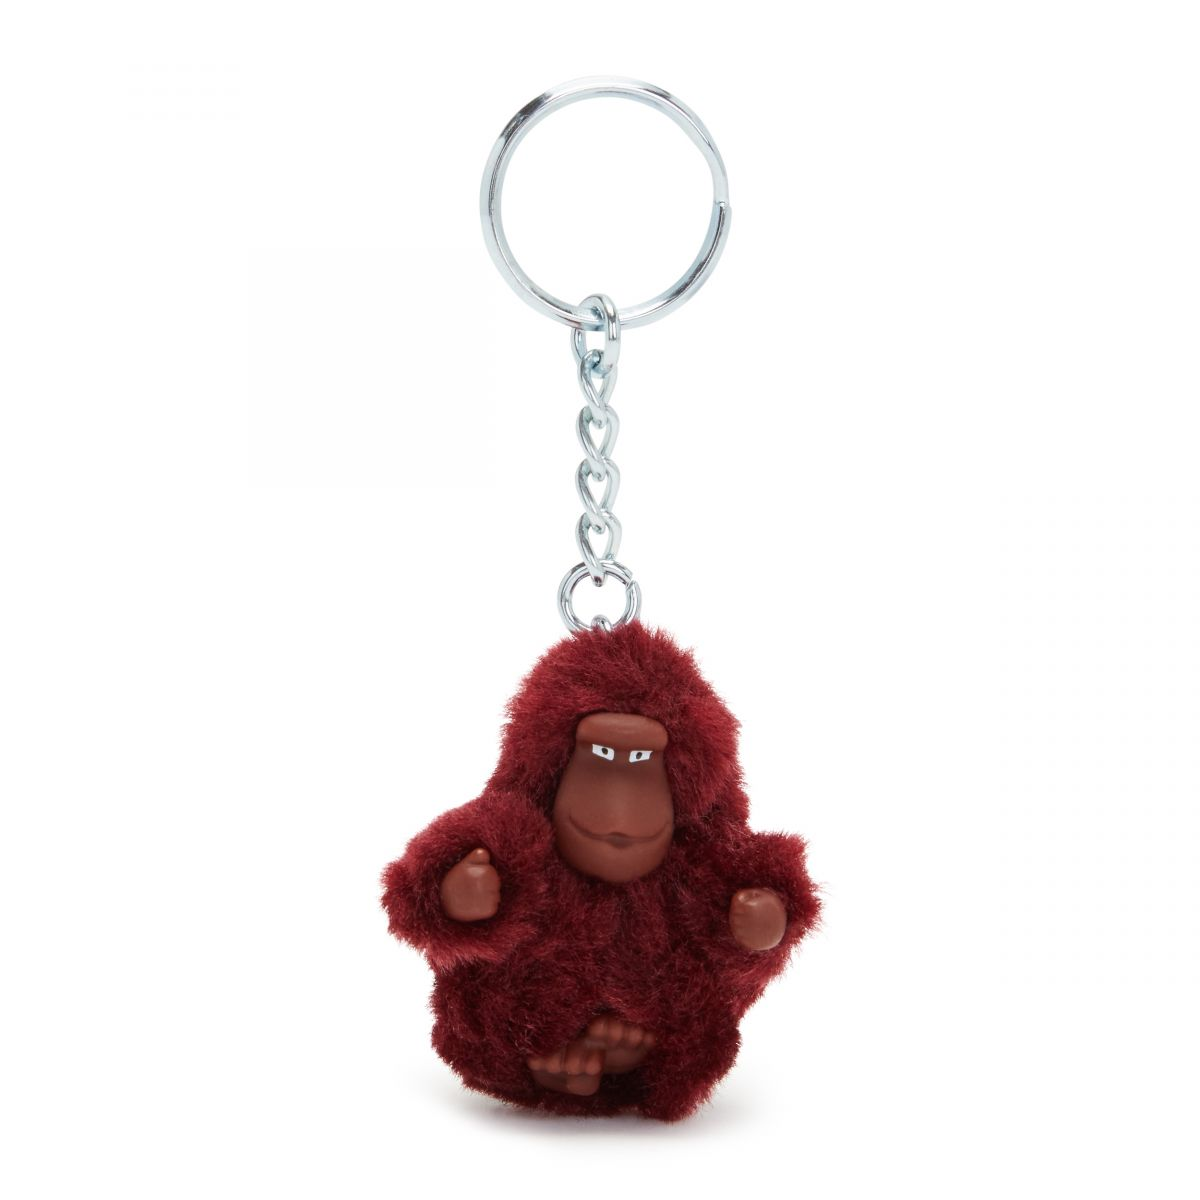 MONKEYCLIP XS KH ACCESSORIES by Kipling - Front view